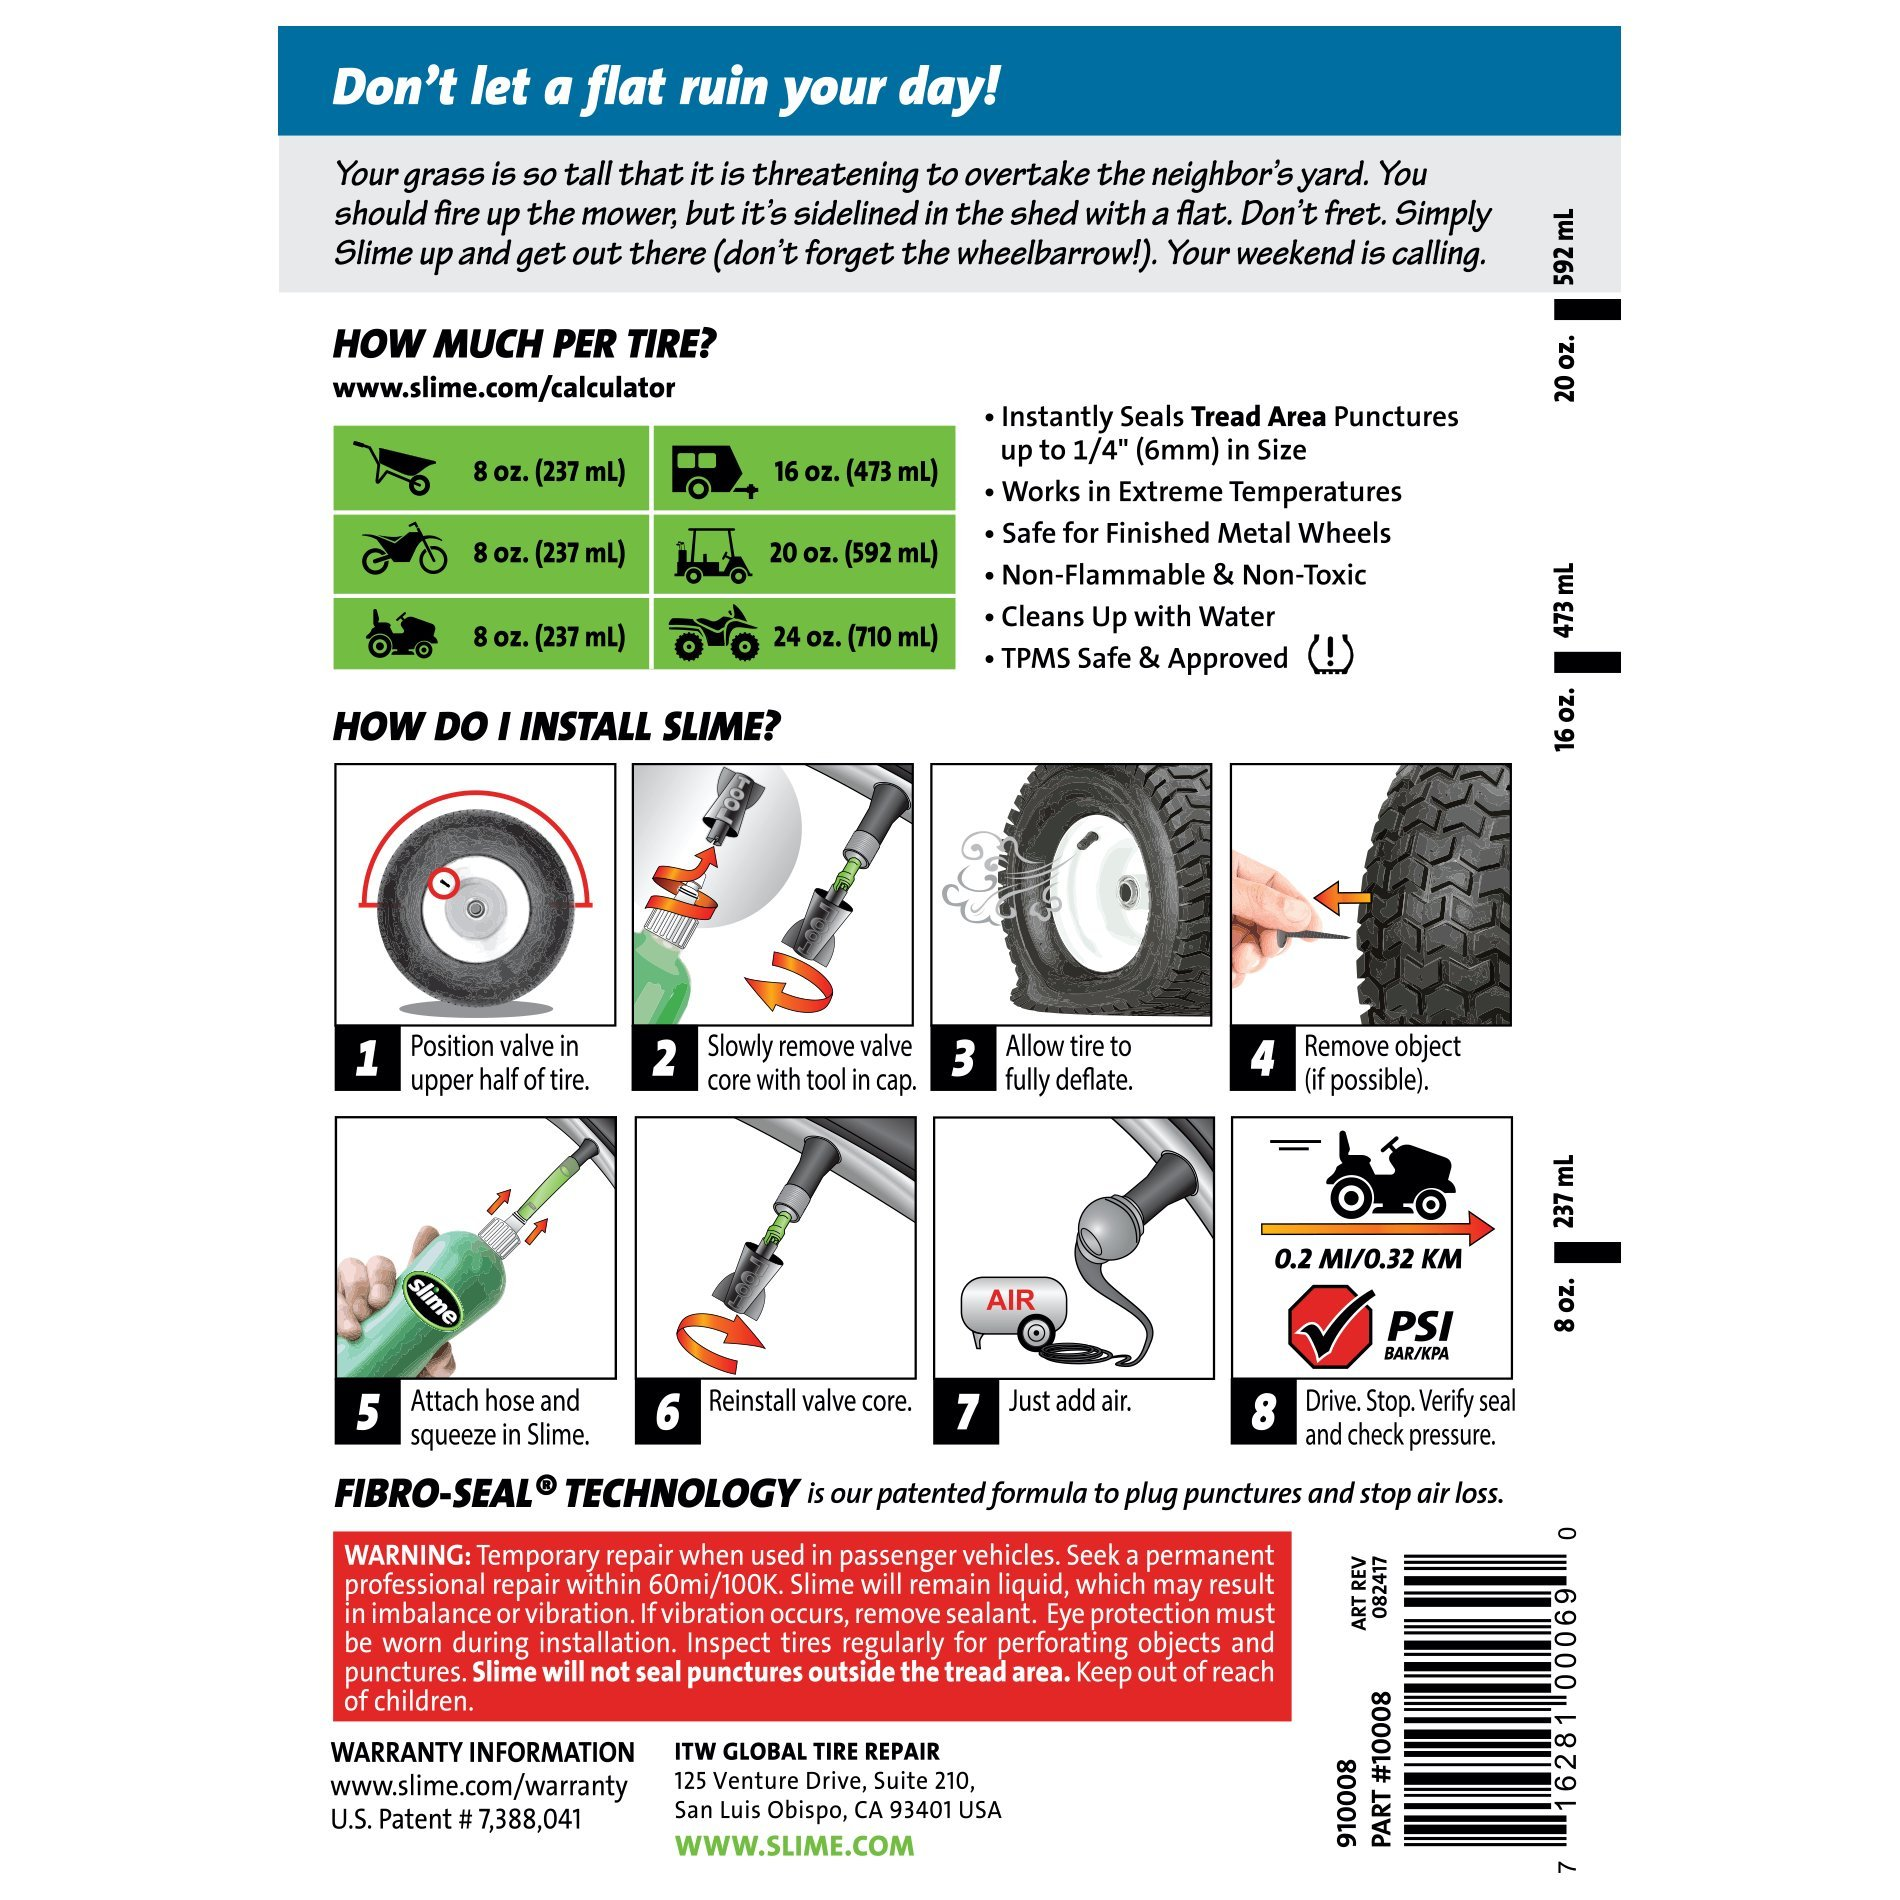 on golf cart tire patch kit hd image of slime prevent repair sealant 24 oz walmart.html